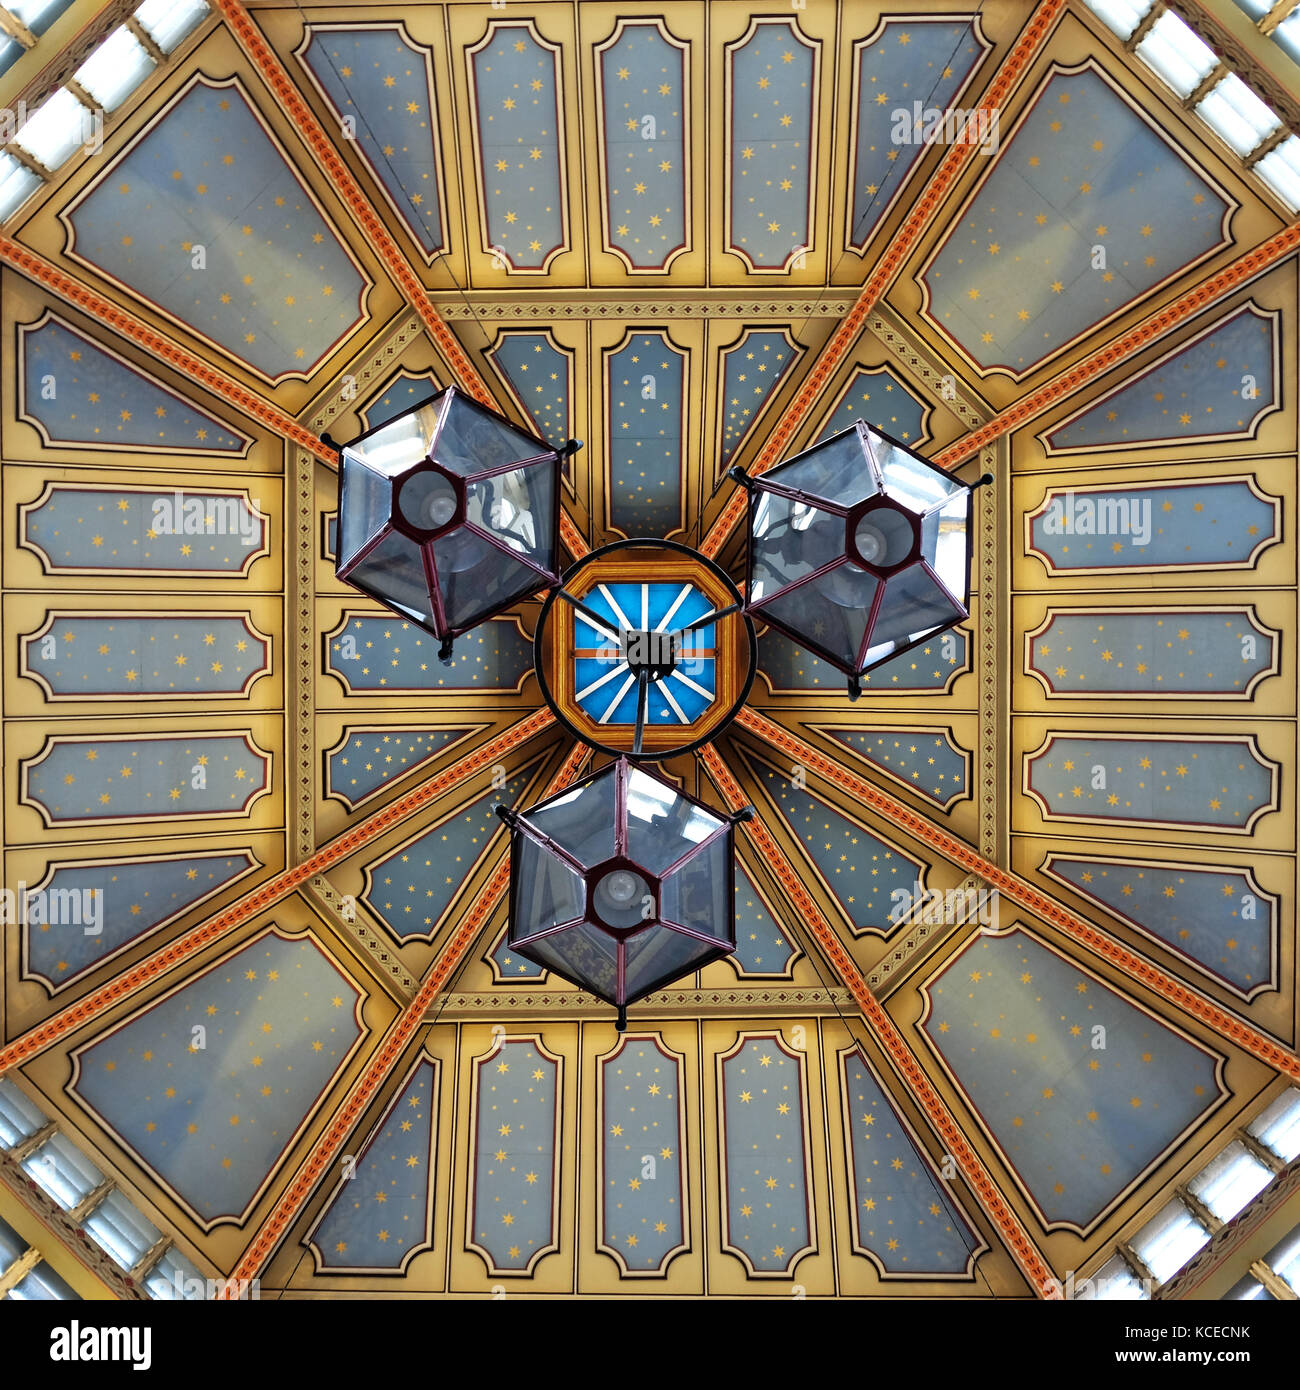 Close up of ornate roof structure at Leadenhall Market, Gracechurch Street, London. - Stock Image